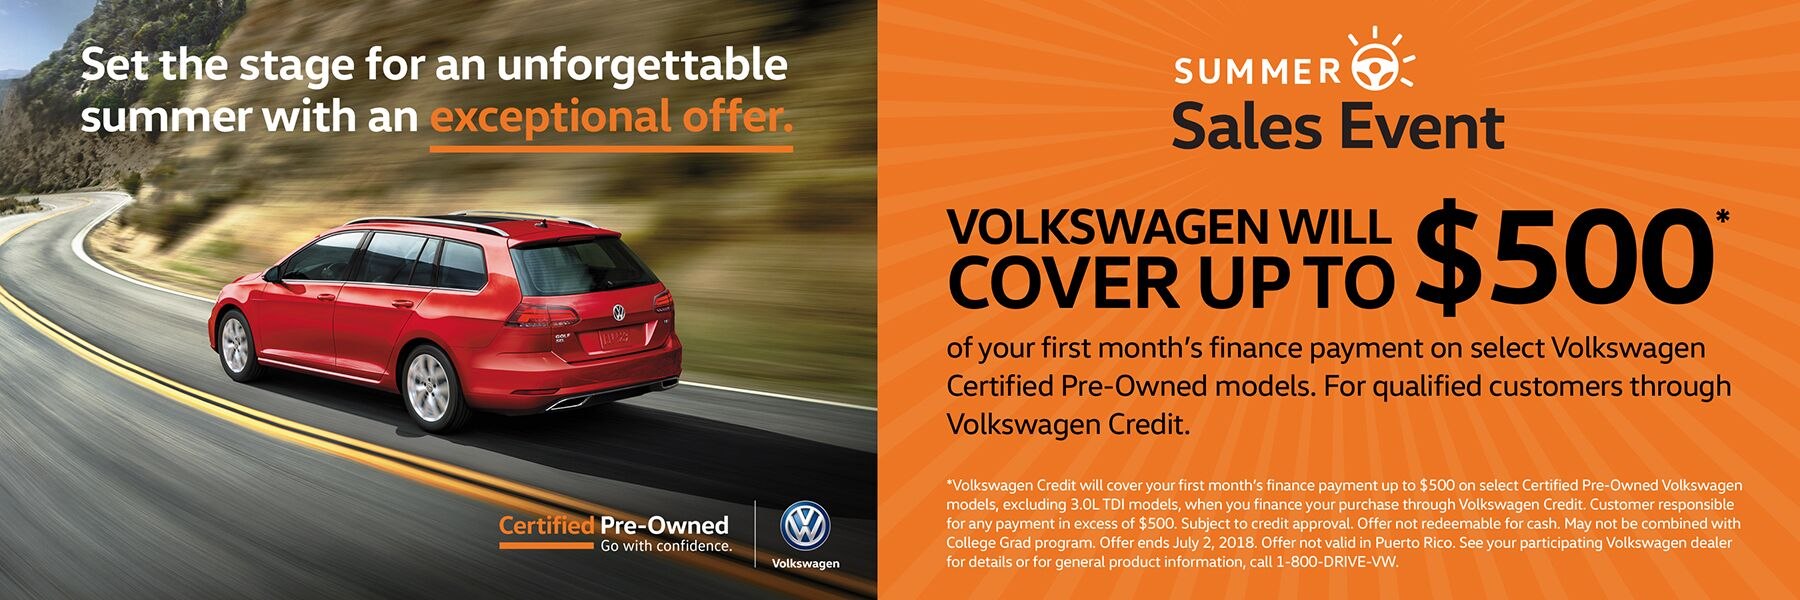 Volkswagen Certified Pre-Owned in El Paso, TX